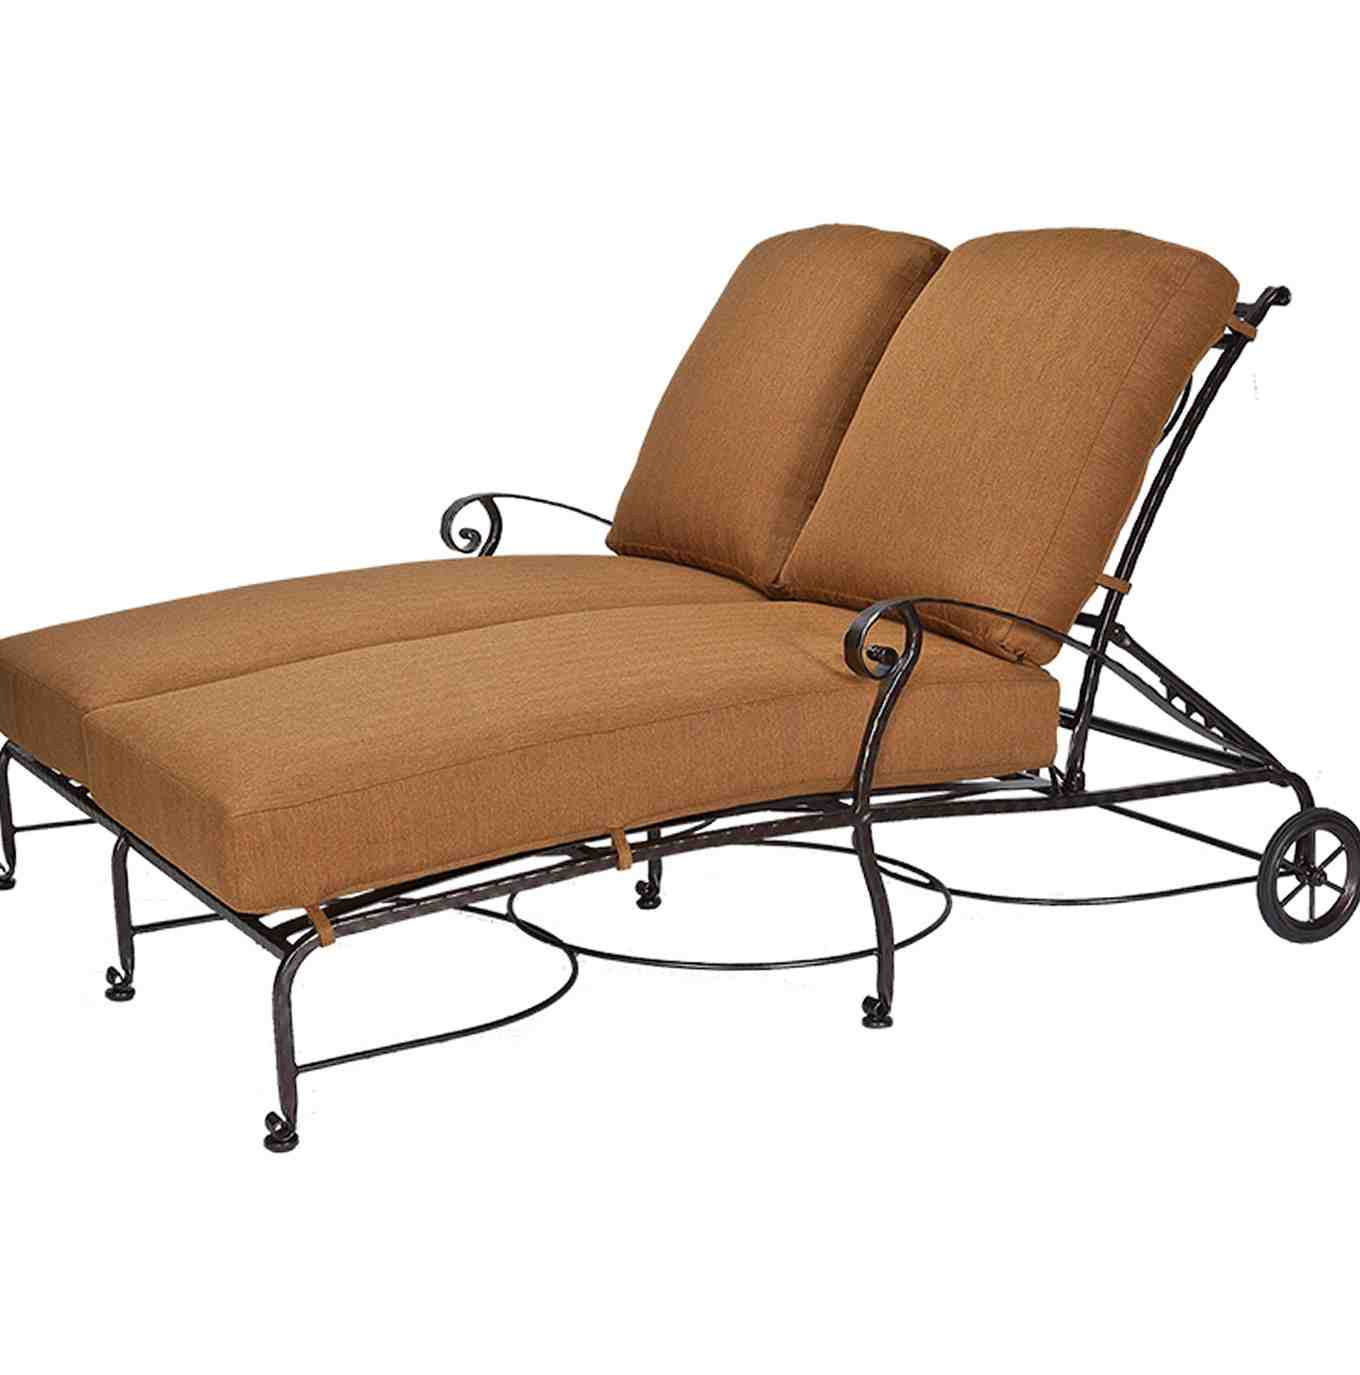 Double chaise lounge cover outdoor furniture home for Chaise lounge cover